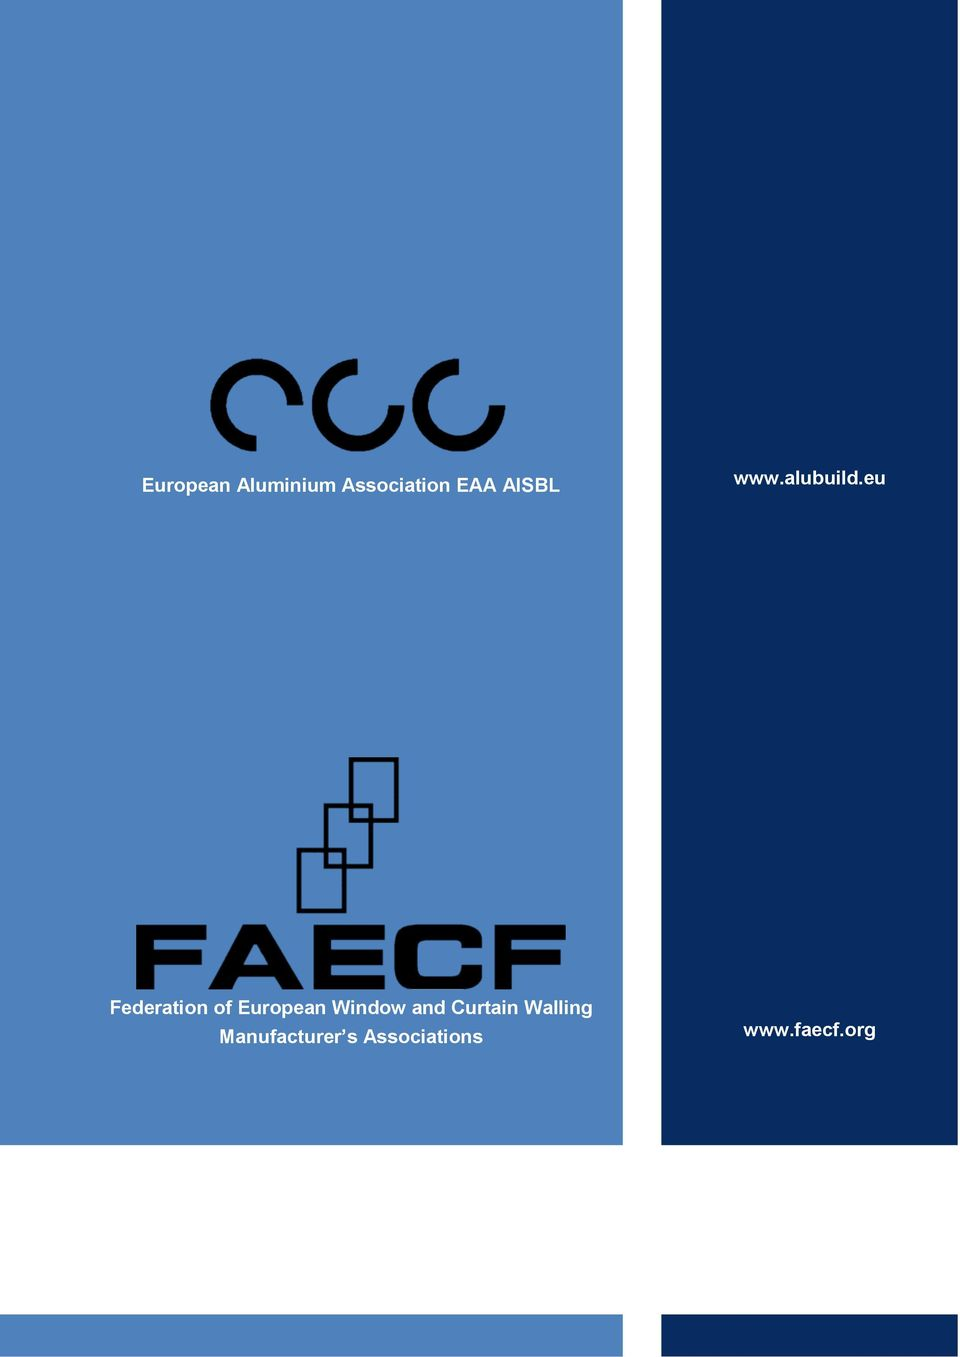 eu Federation of European Window and Curtain Walling